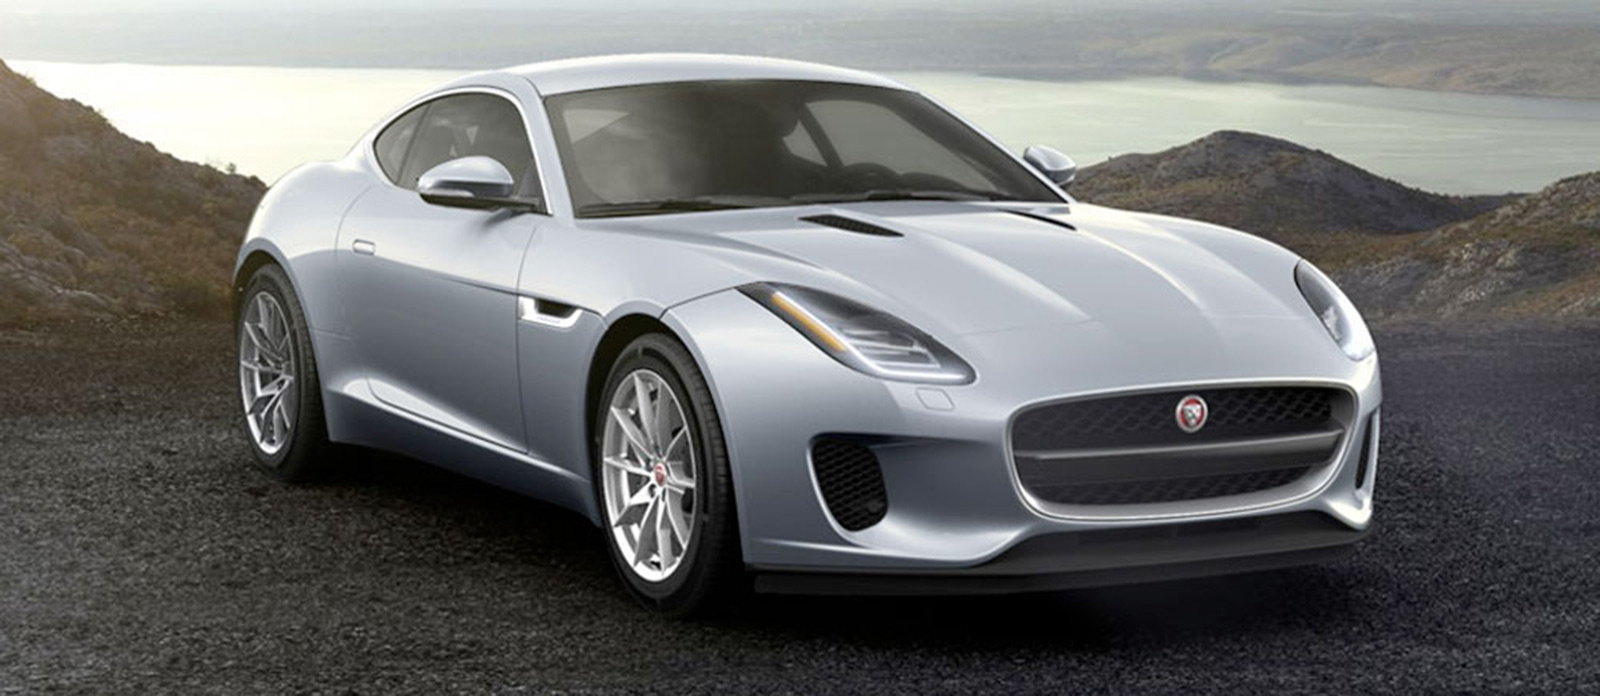 IMG_WRAPPER_JDX_F-TYPE_COUPE_OFFER_1600x696_jpg